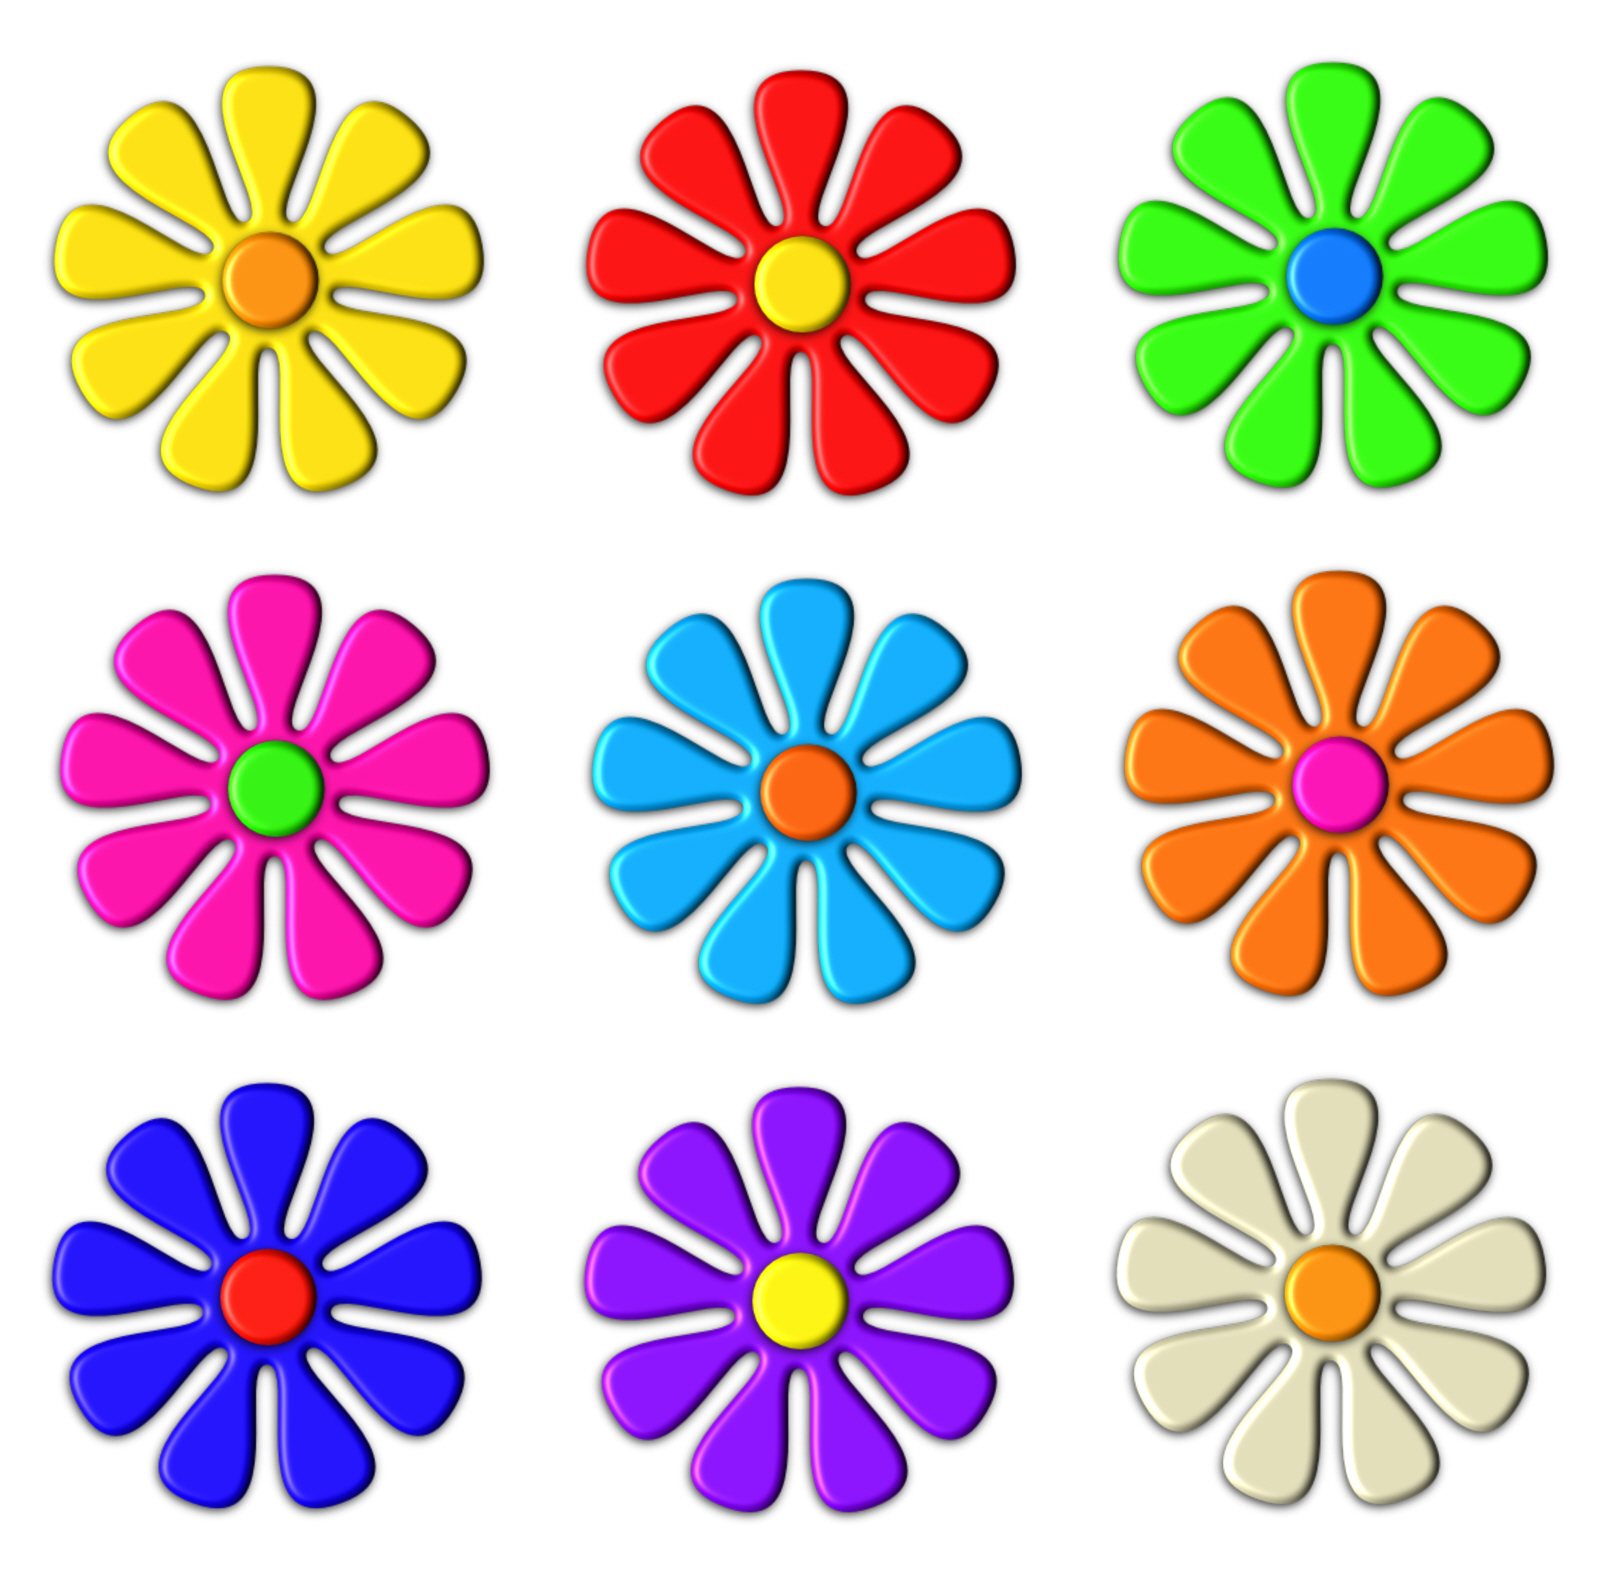 Free Stock Photo 9075 colourful 3d flowers.